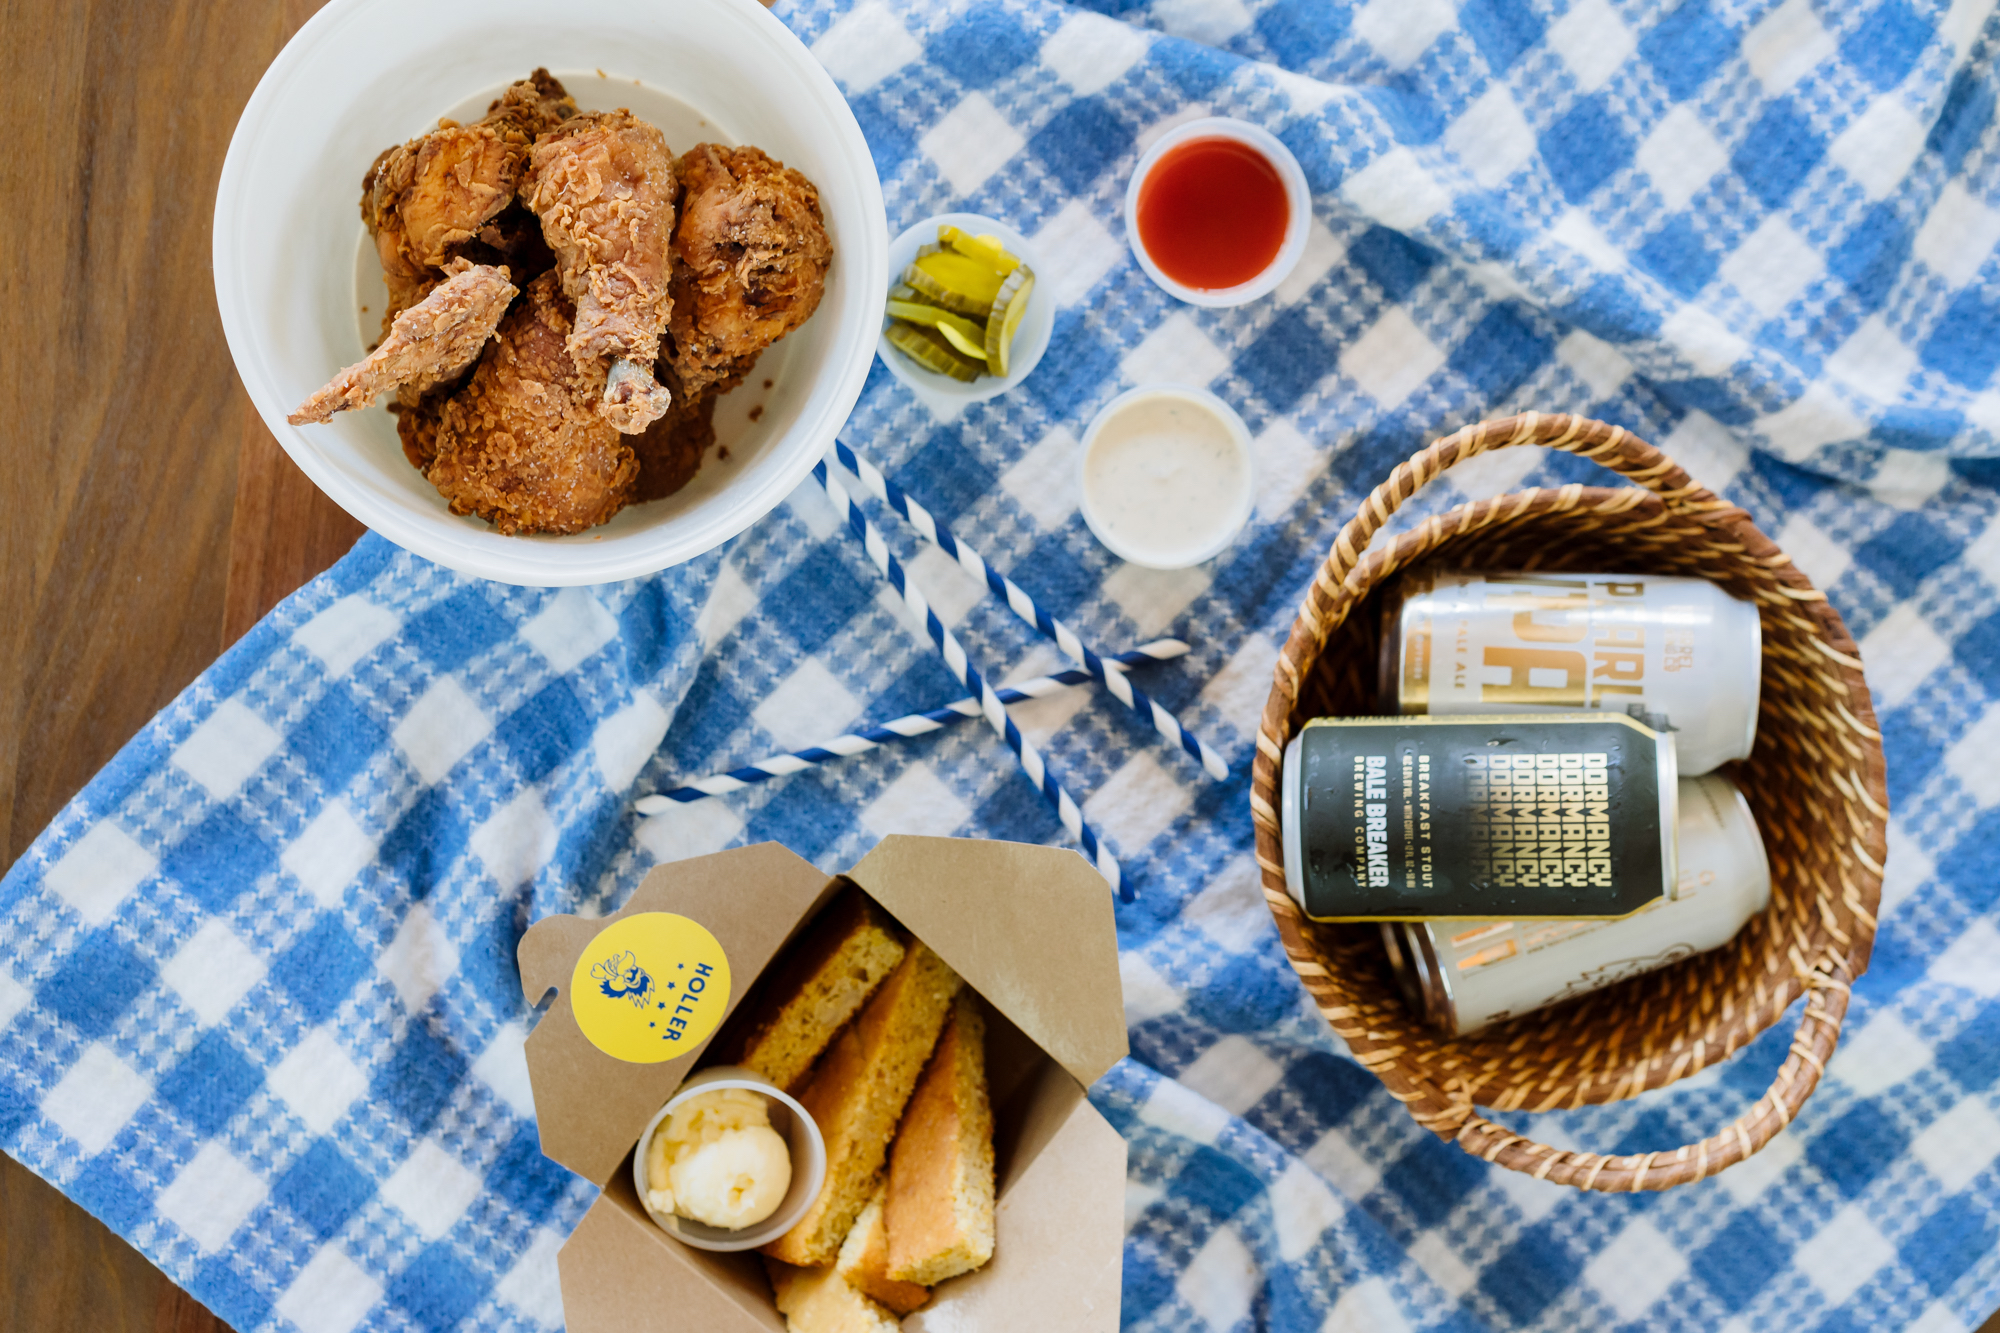 A bowl of fried chicken from Holler sits on a blue-and-white-checkered tablecloth, next to sticks of cornbread and a wicker basket full of canned beer